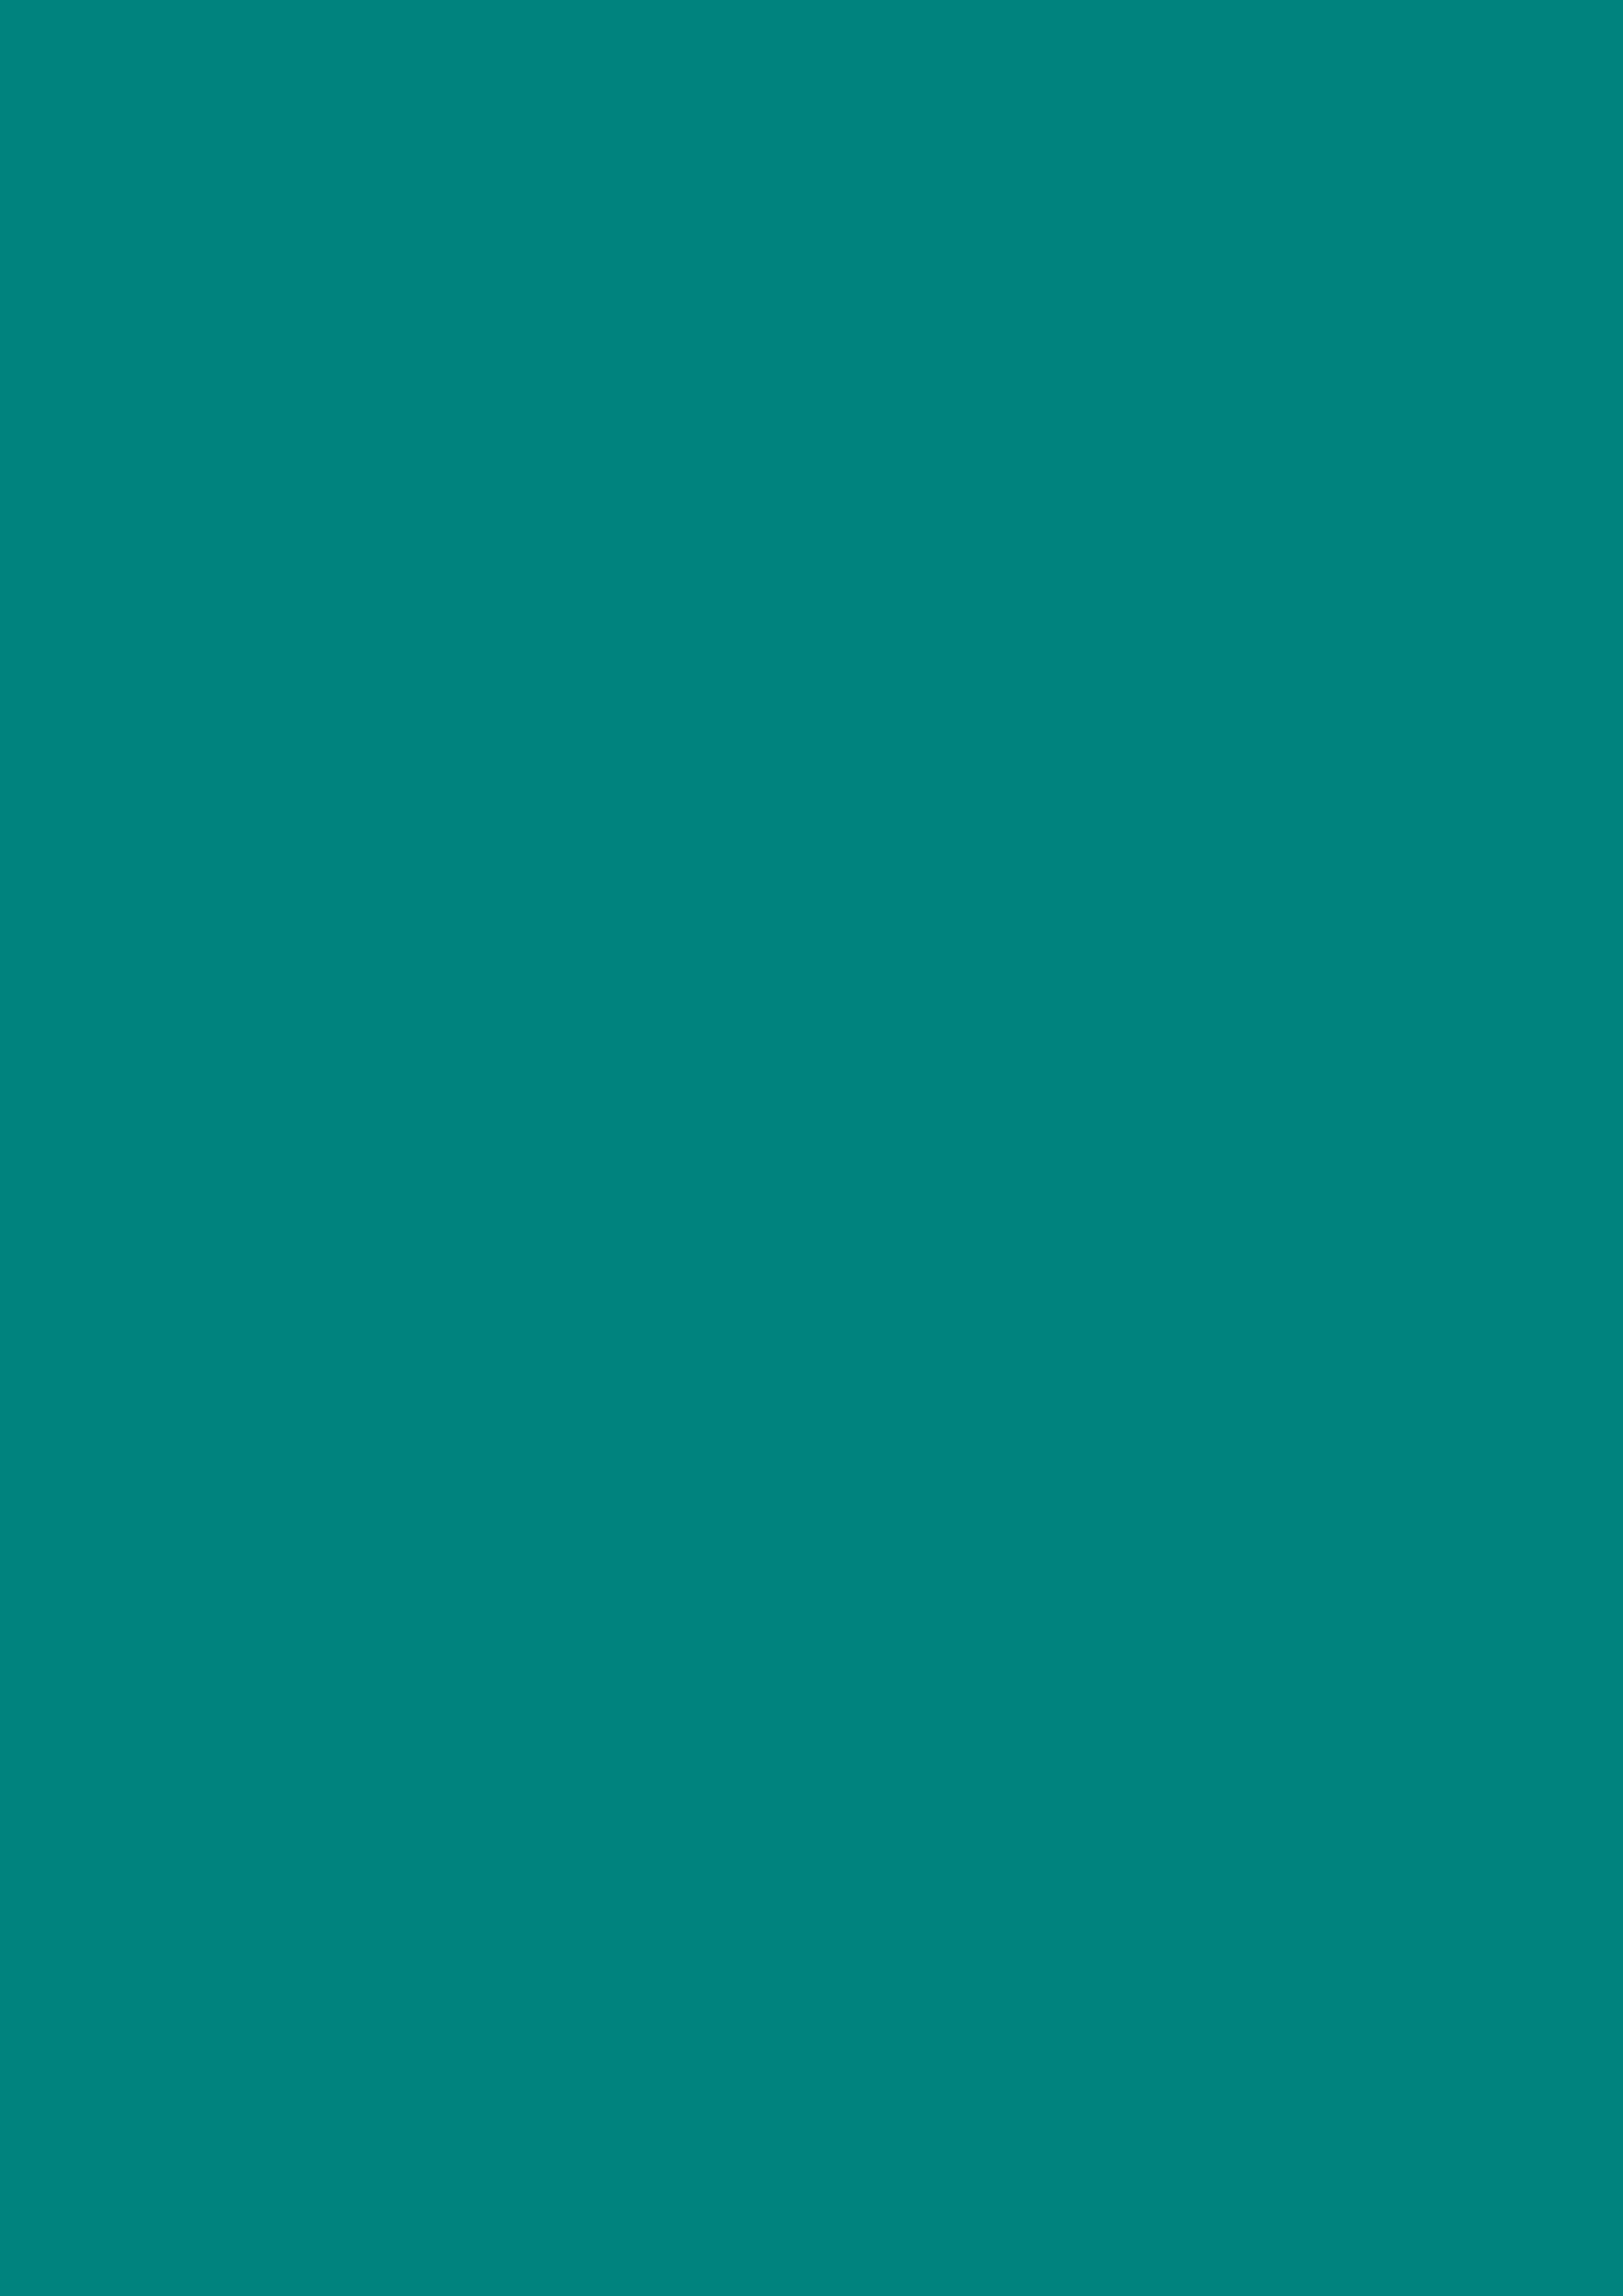 2480x3508 Teal Green Solid Color Background